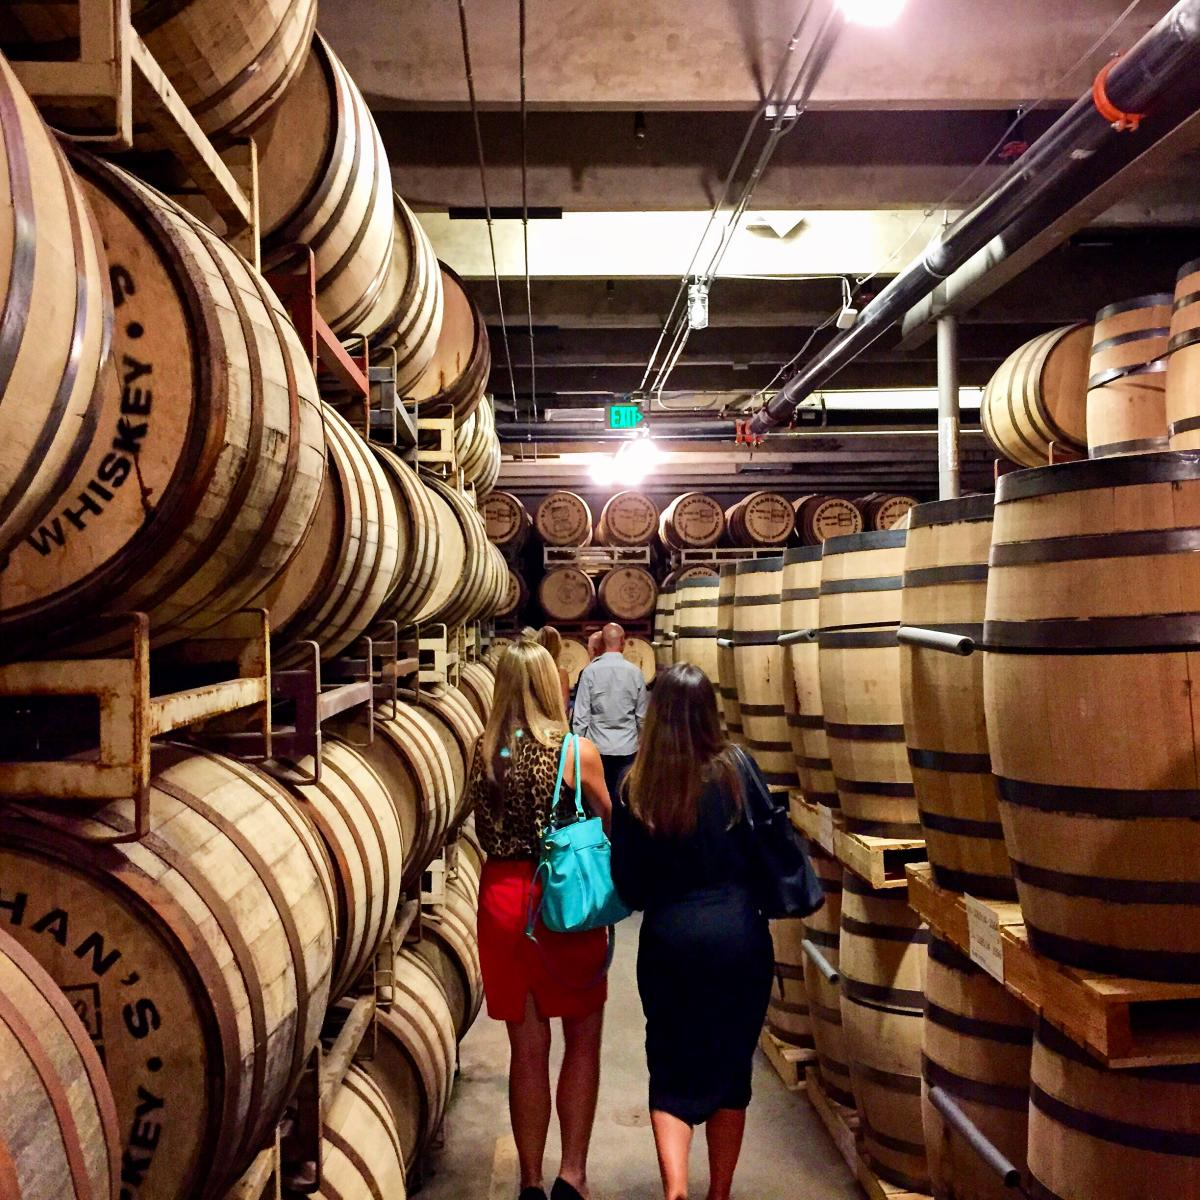 Stranahan's Colorado Whiskey barrels